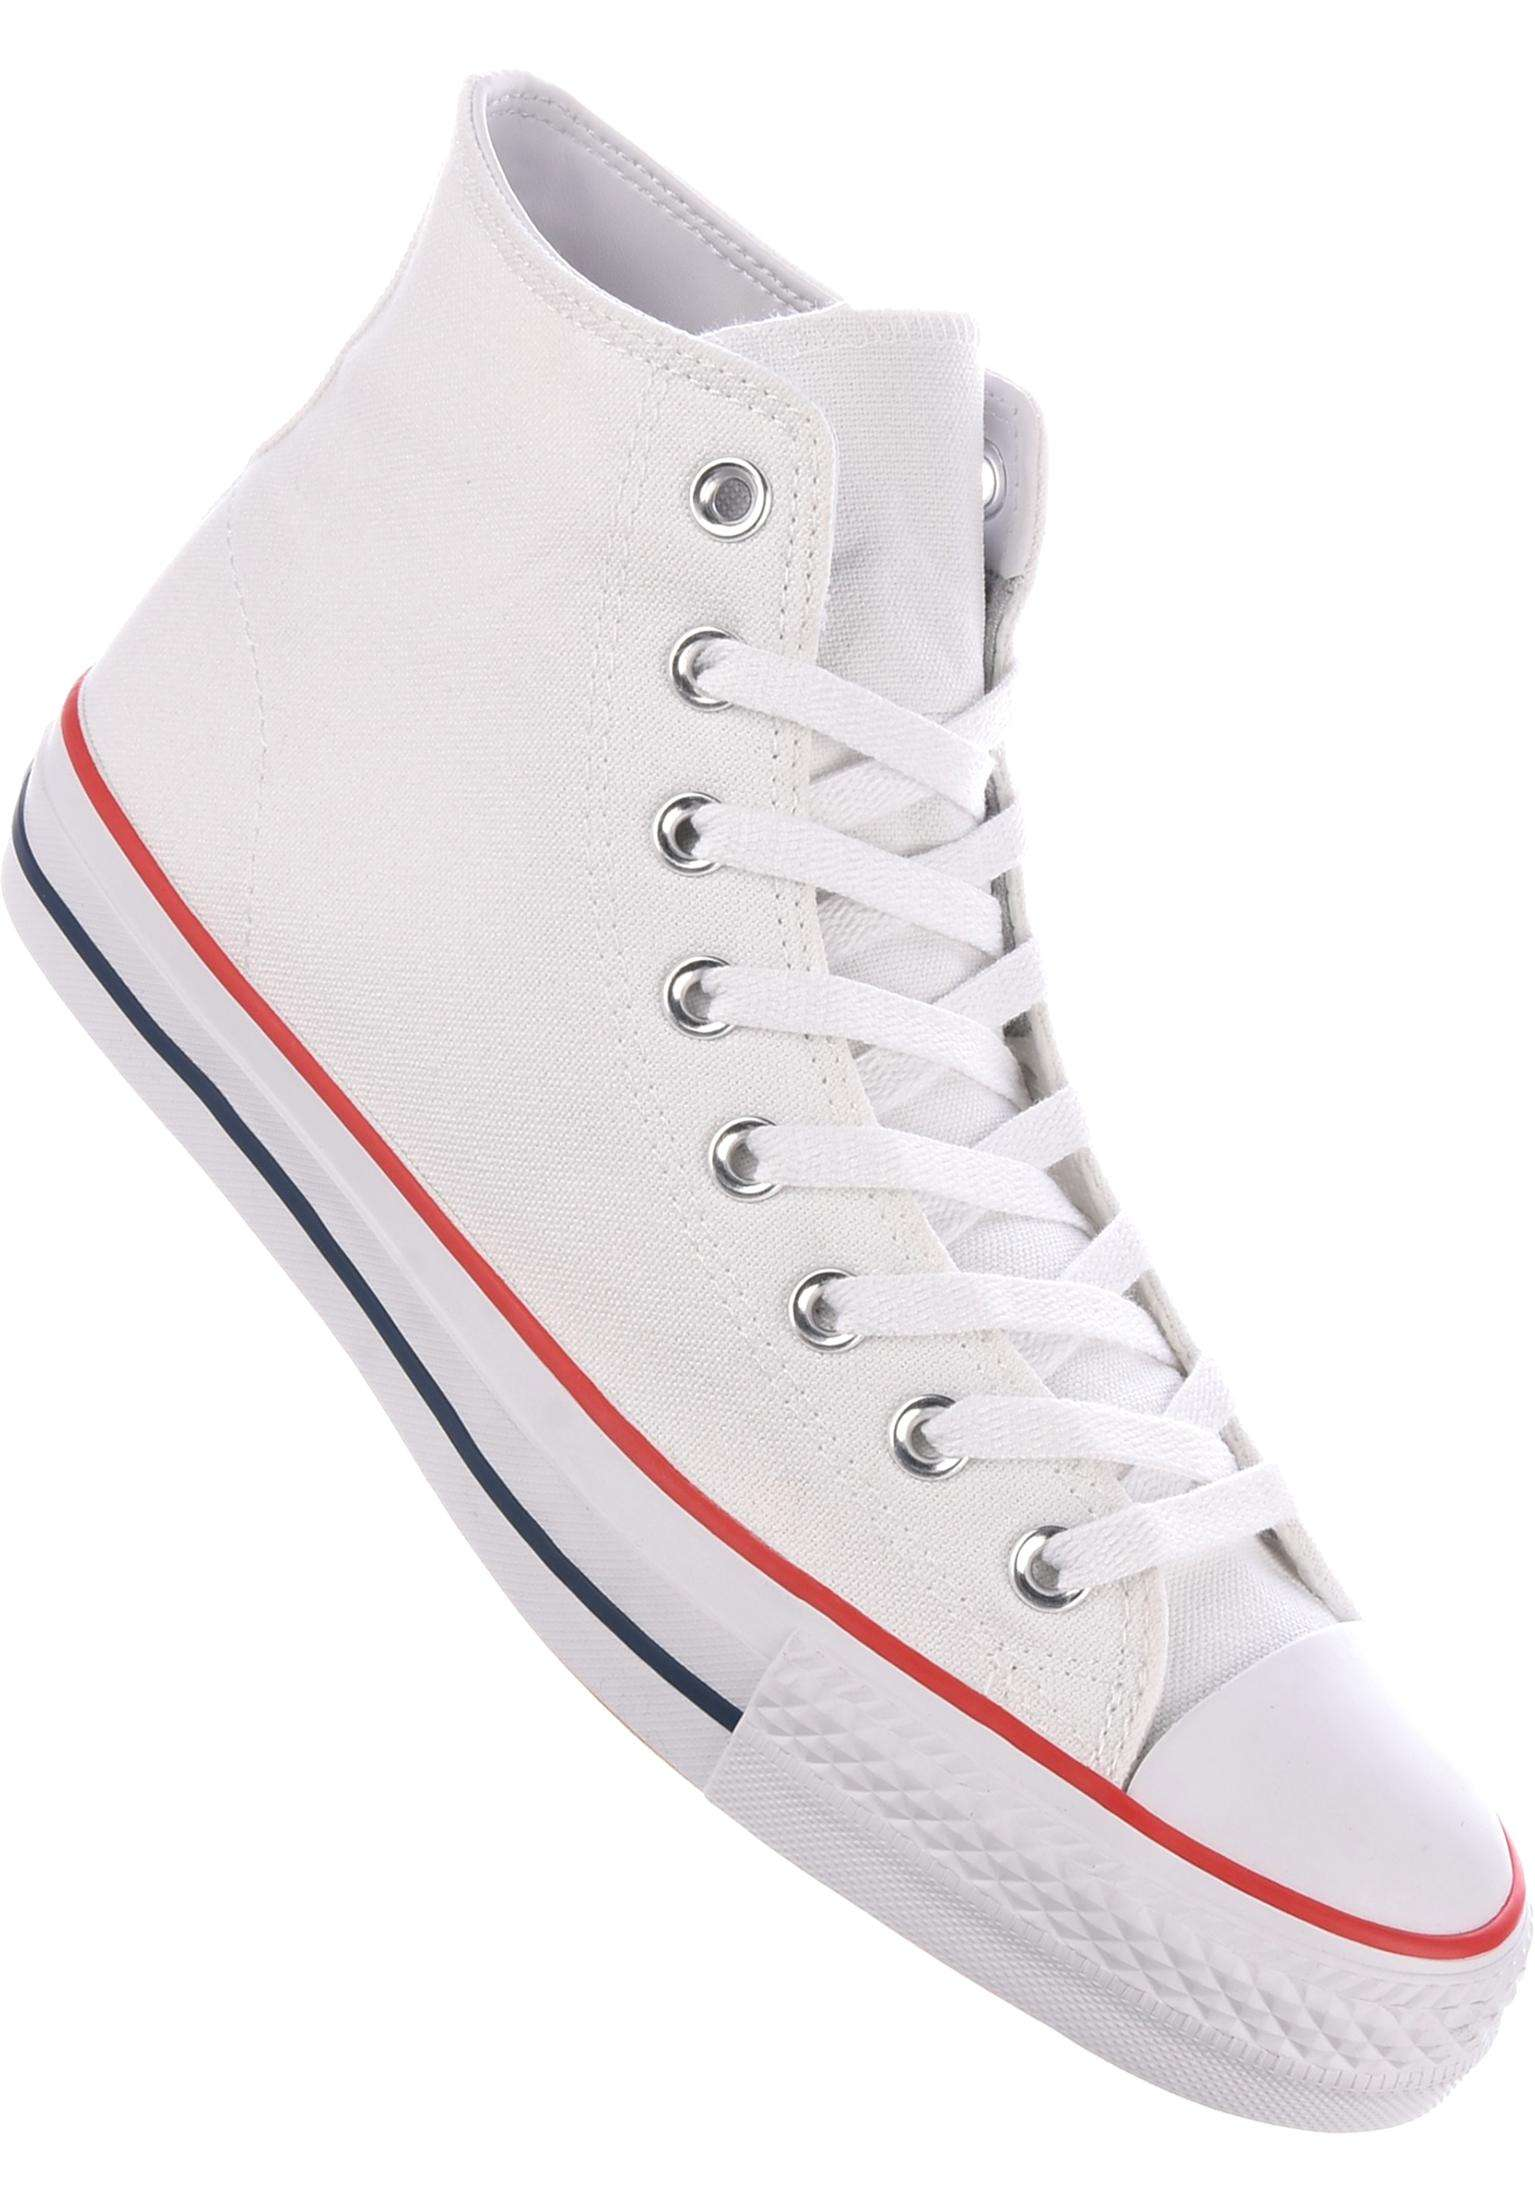 0afc2df51417 CTAS Pro Hi Converse CONS All Shoes in white-white for Men